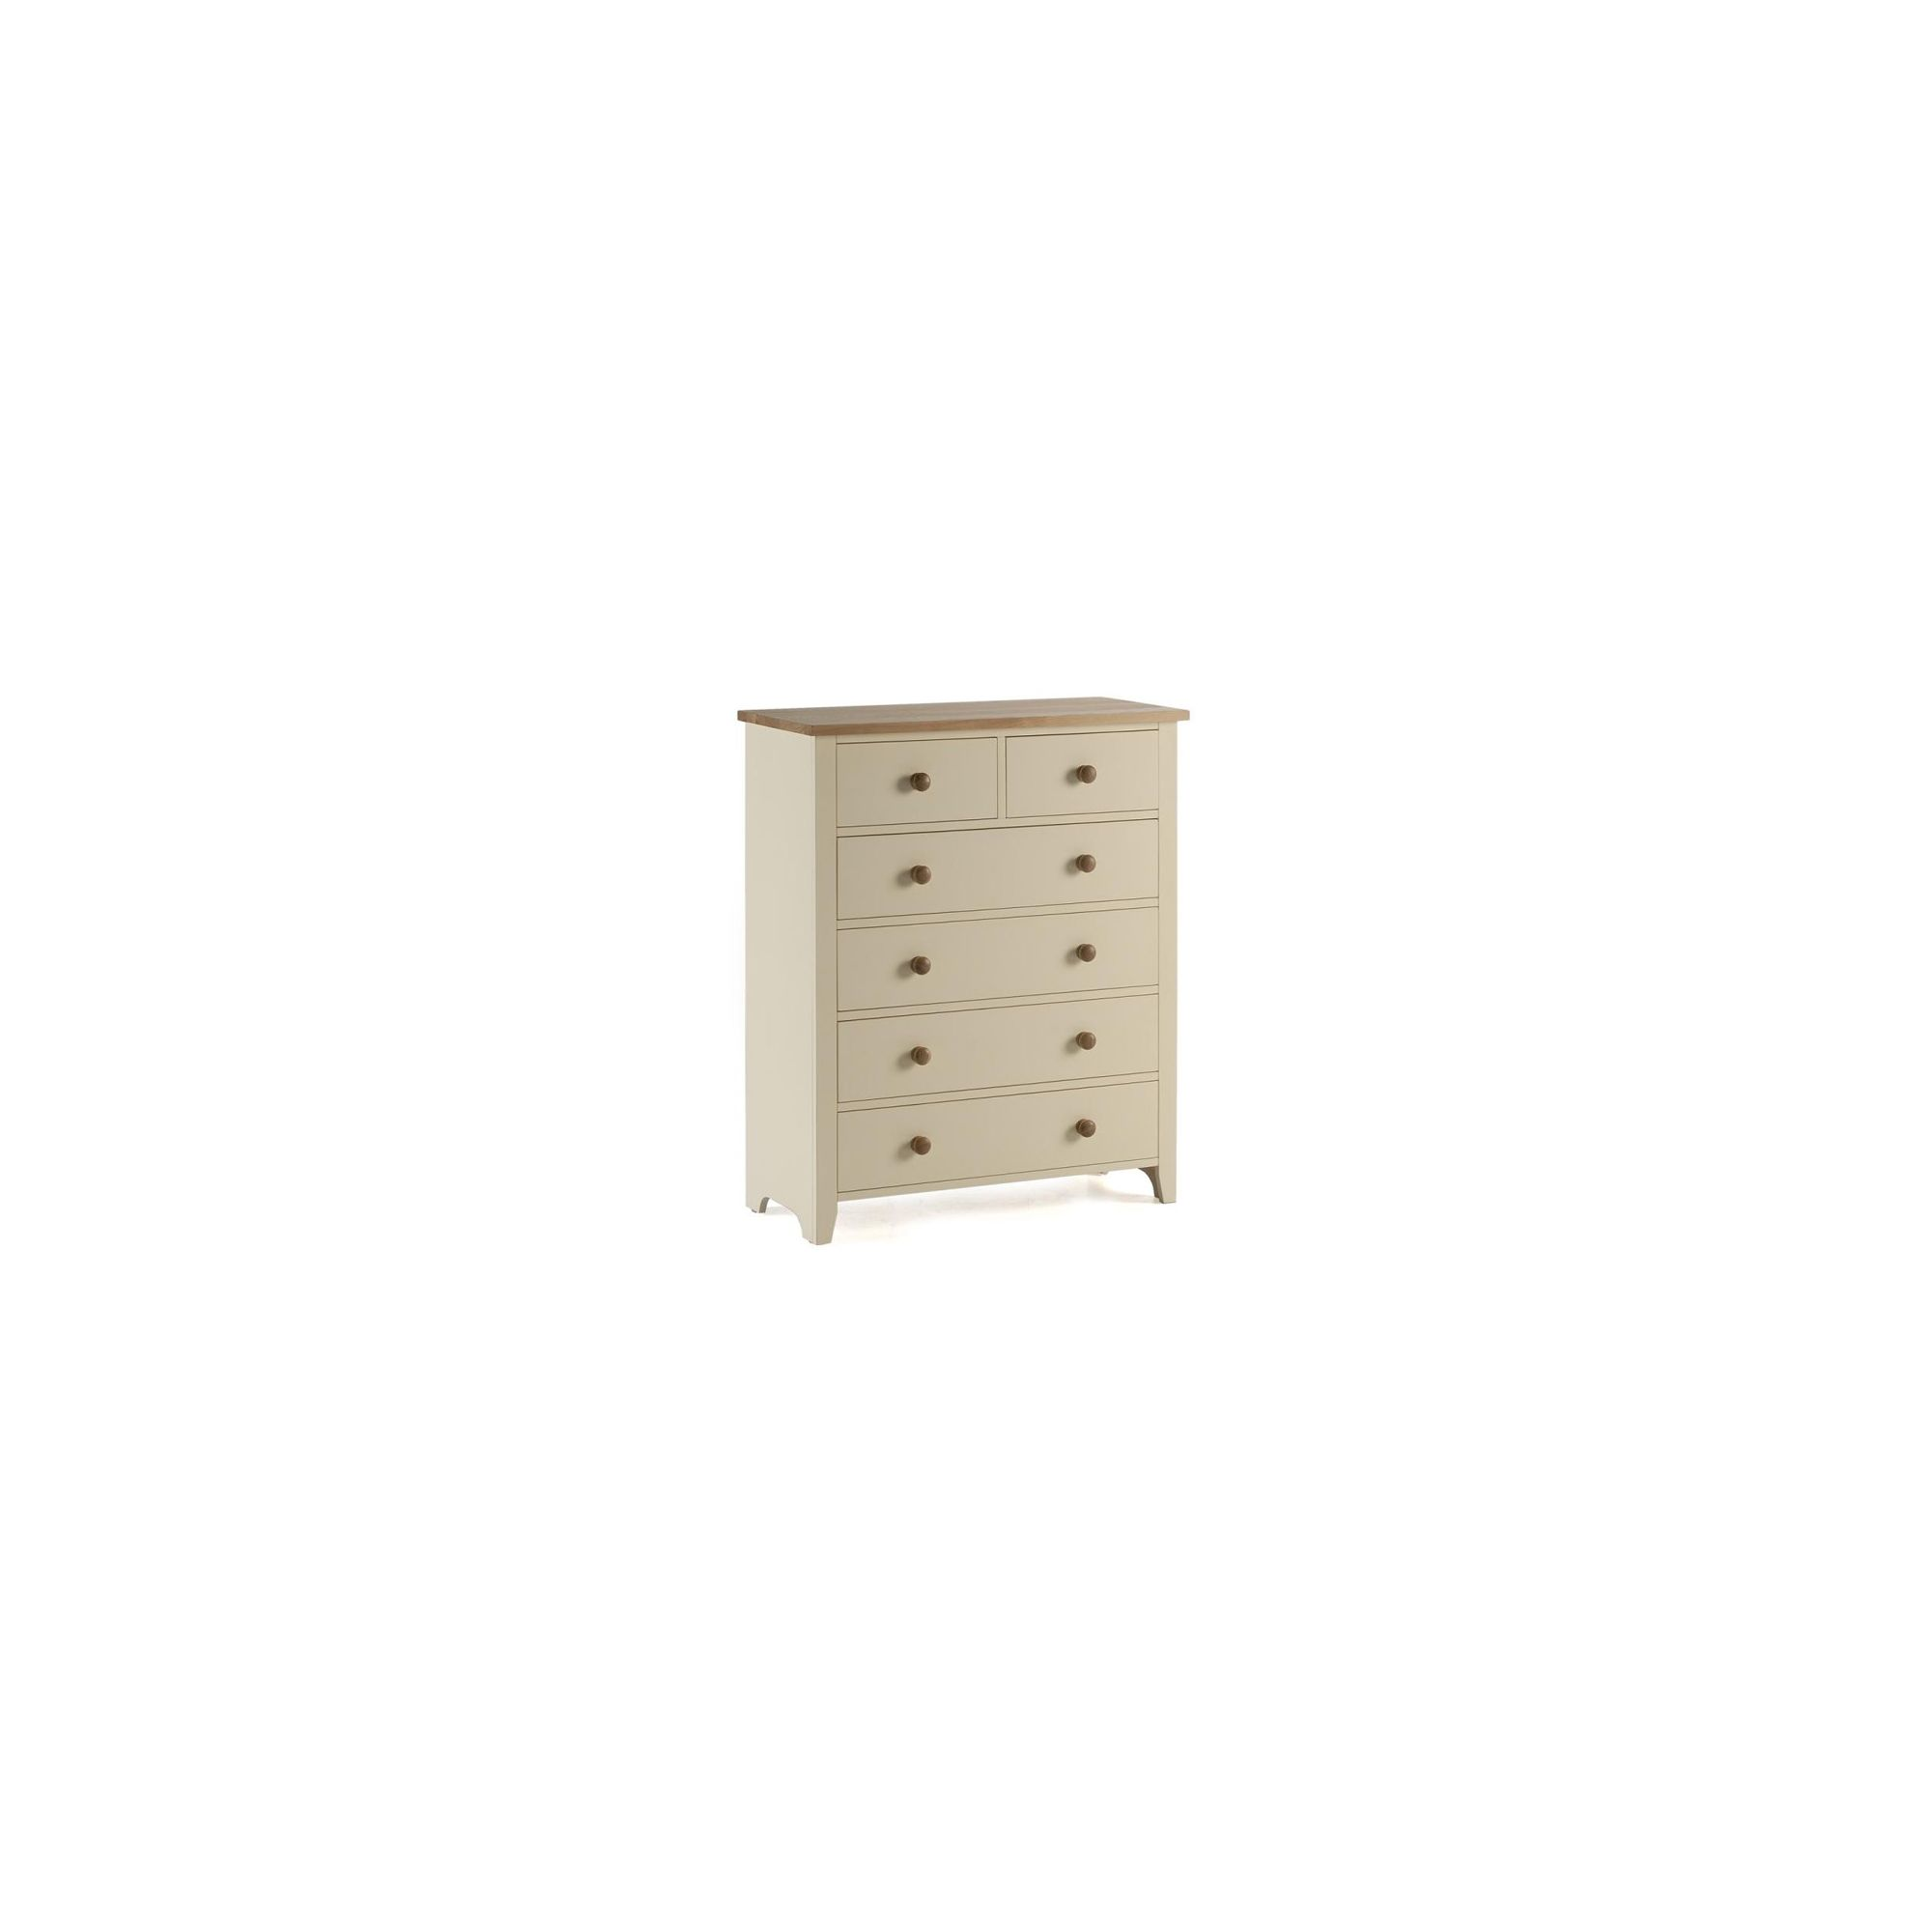 Ametis Camden Painted Pine and Ash Deep Chest in Painted Ivory - 90cm at Tesco Direct